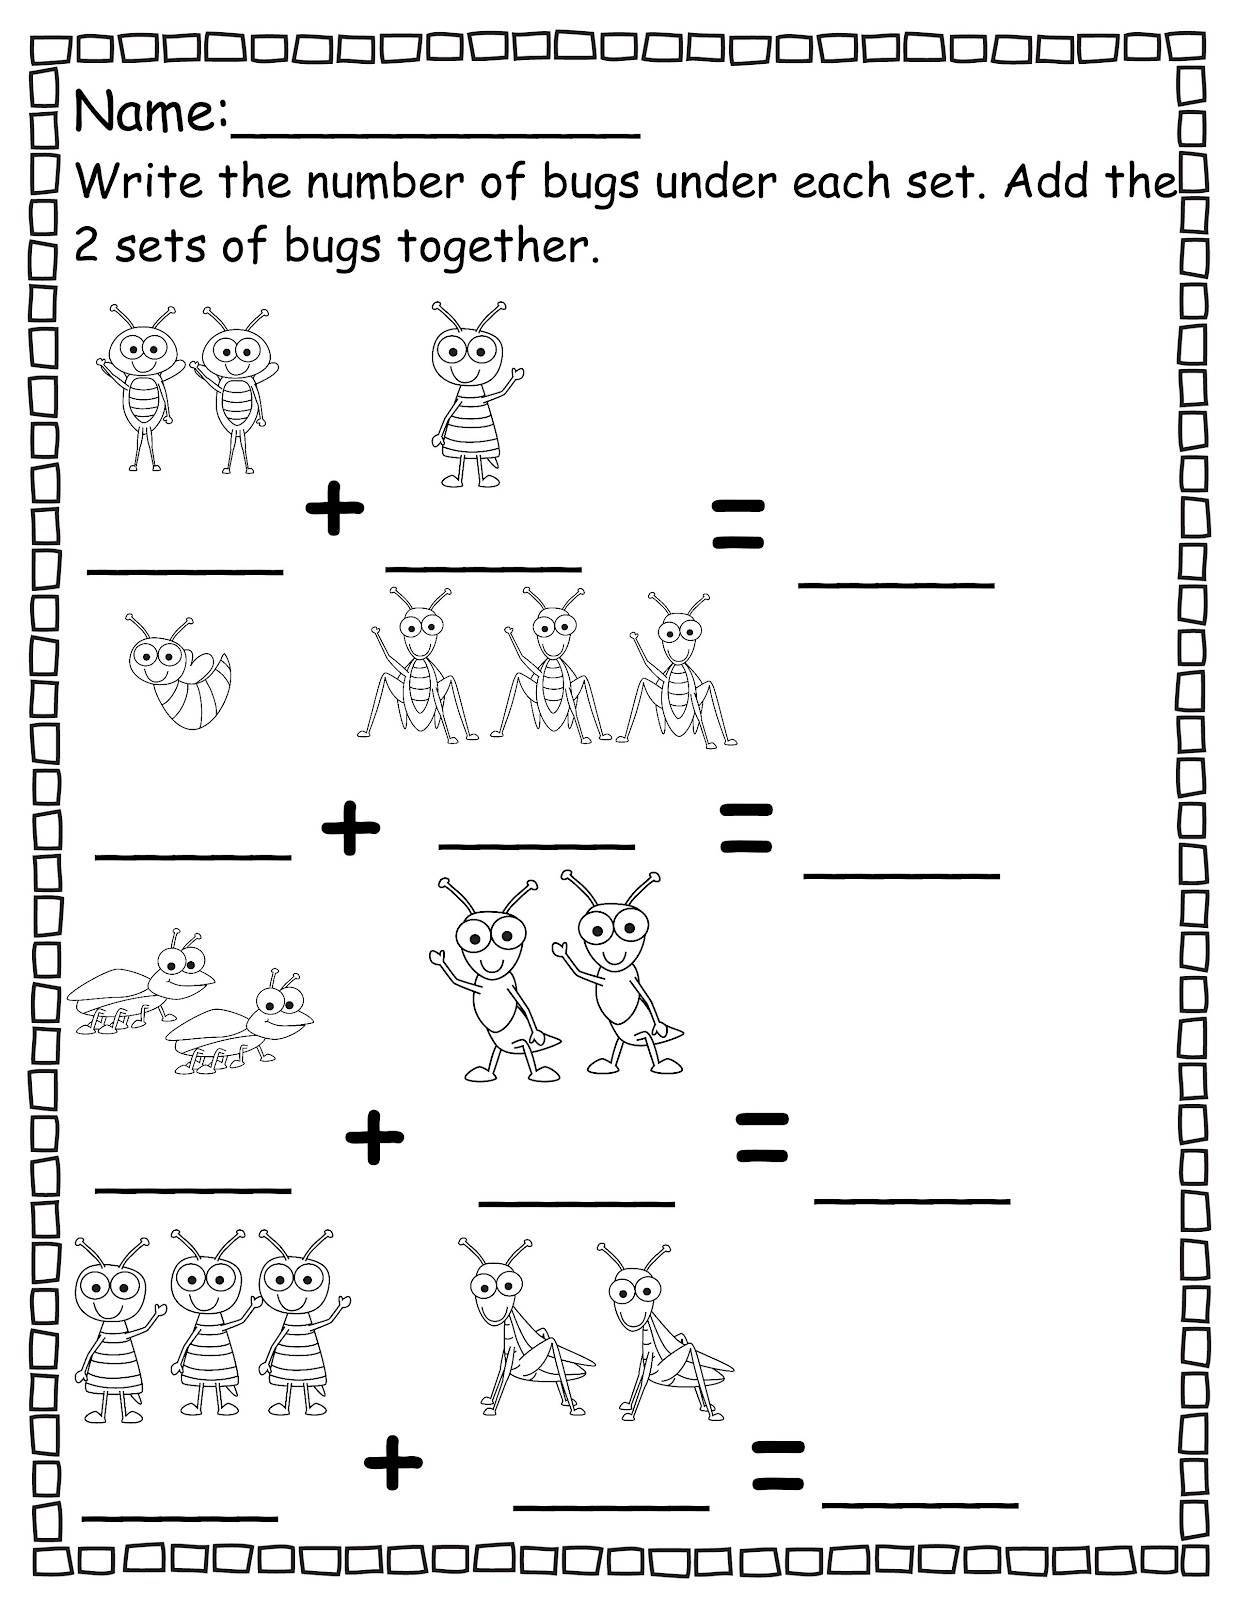 Printables Worksheets For Prek pre kinder worksheets hypeelite k number activity shelter